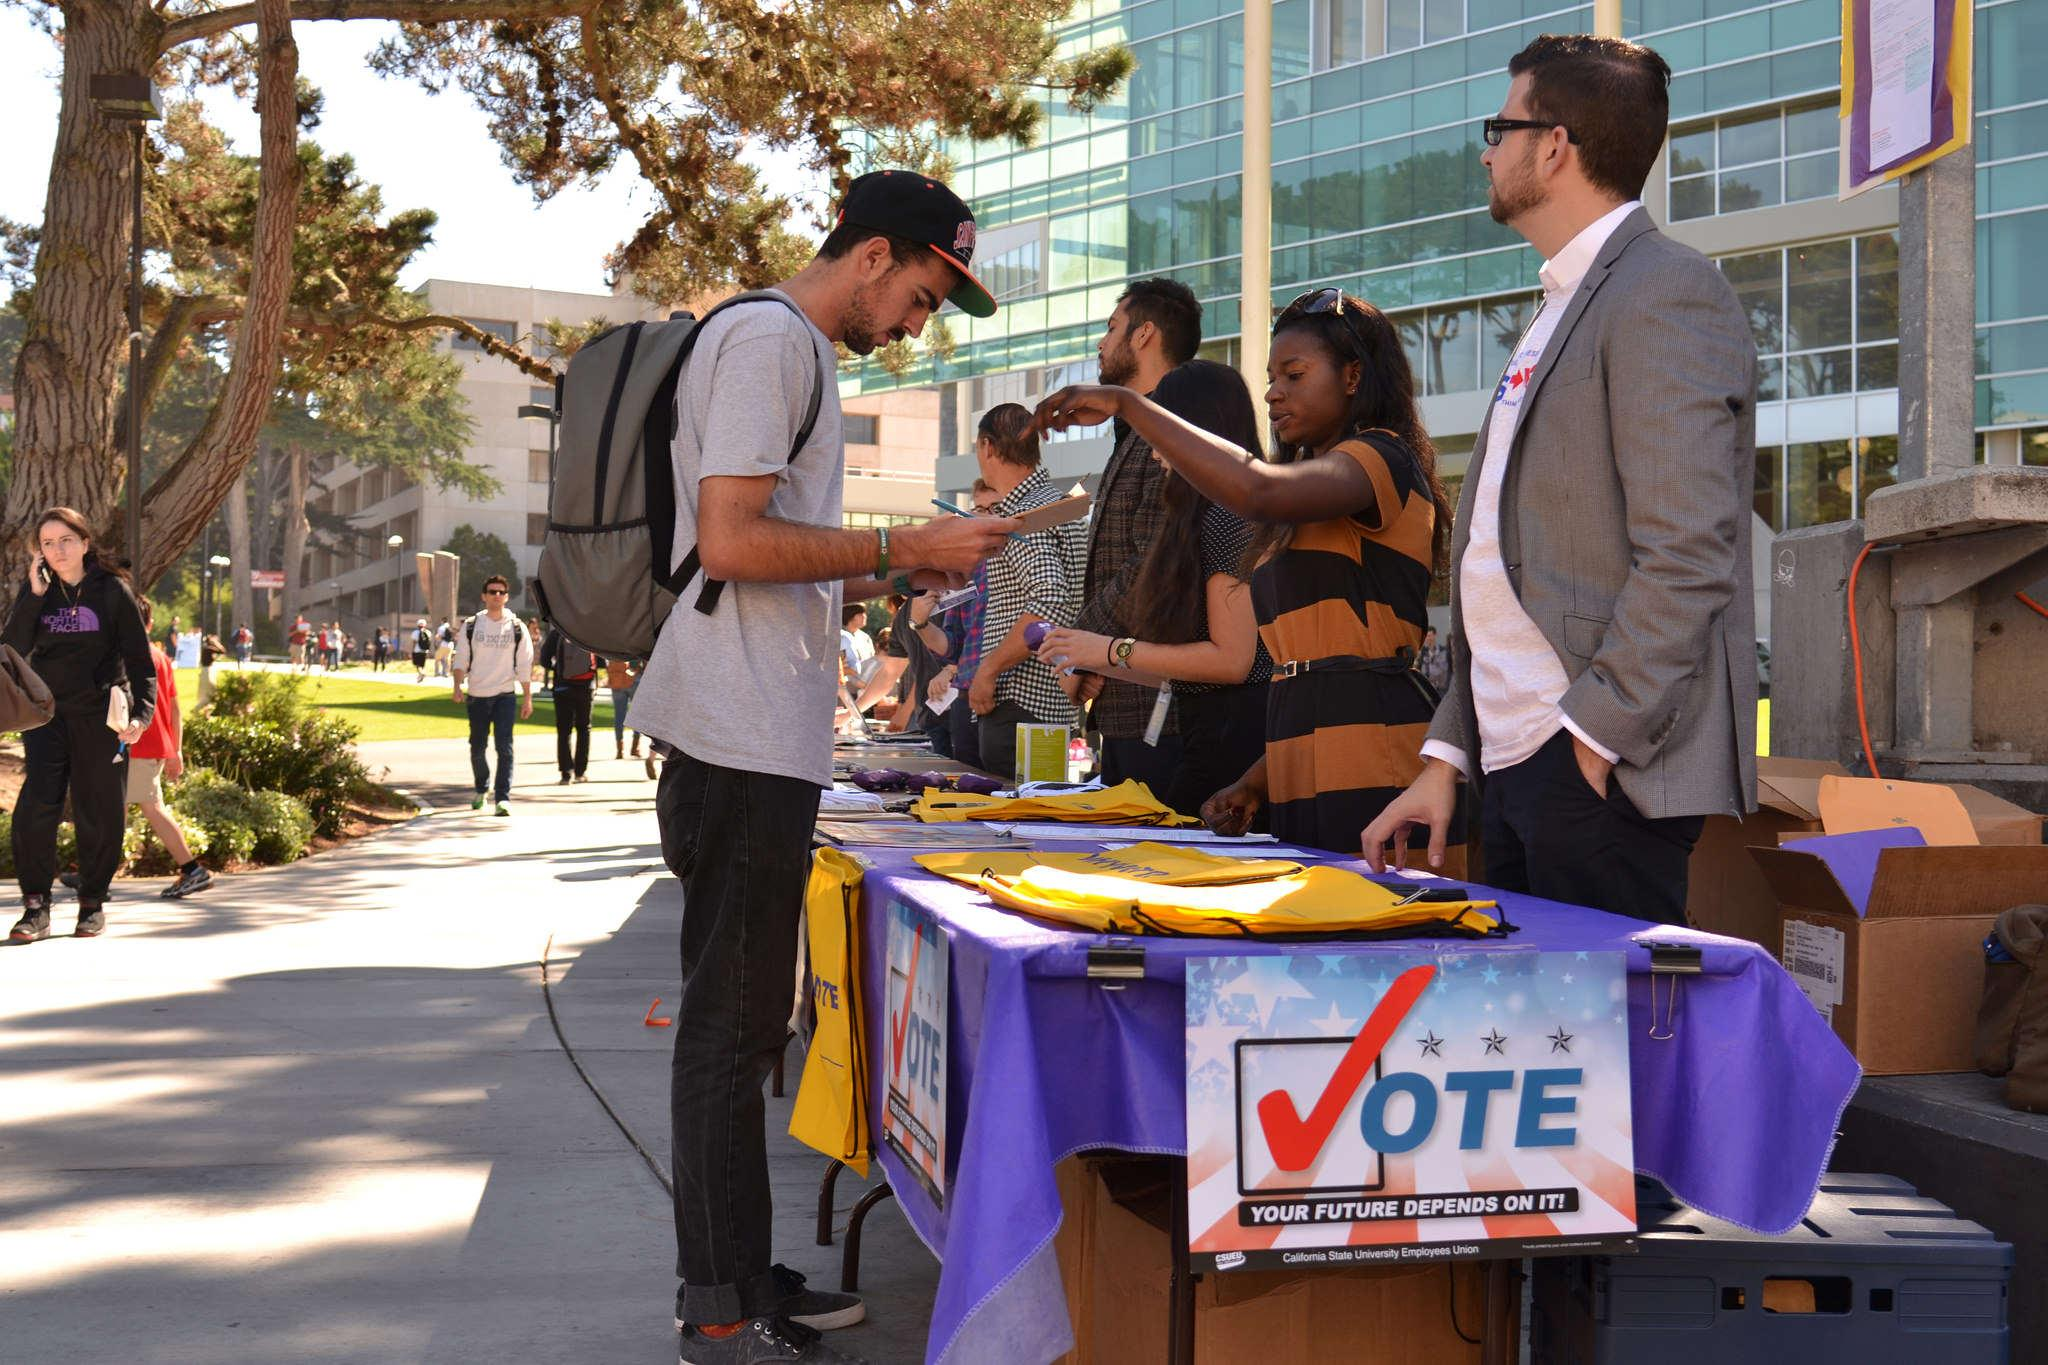 History major Joseph Scimonelli registers to vote at the campus government and community relations table Monday, Oct. 13, 2014. The event was intended to encourage students who have not yet registered to participate in the November election.